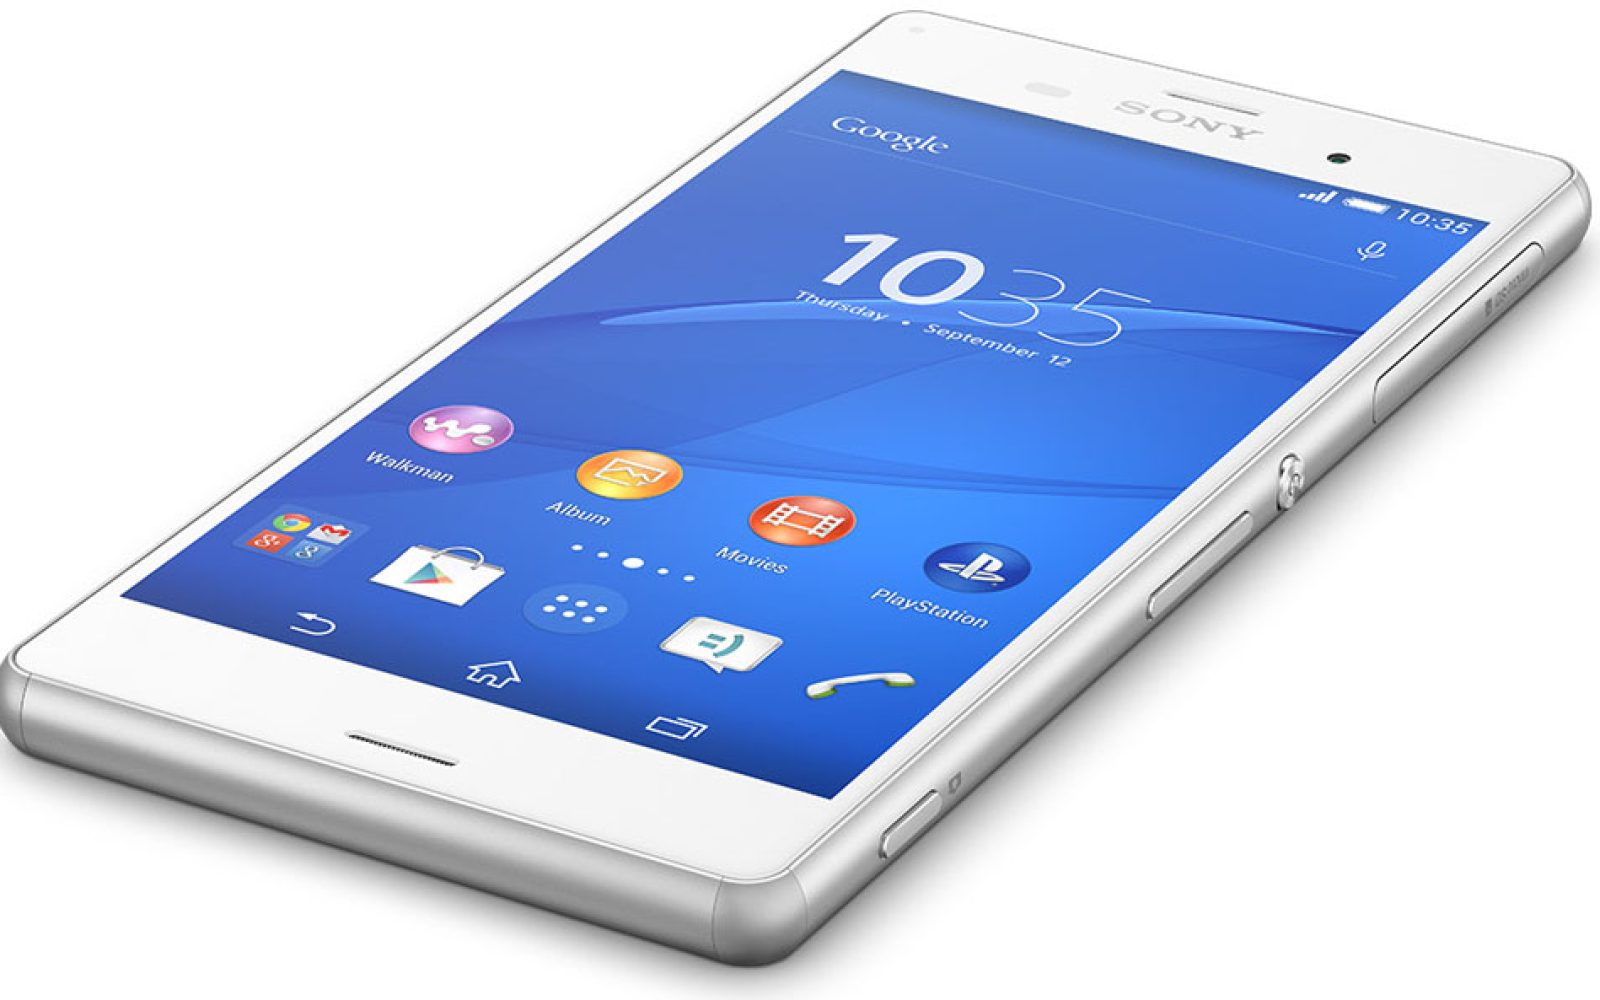 Sony rolling out new firmware update for Xperia Z2 & Z3 for